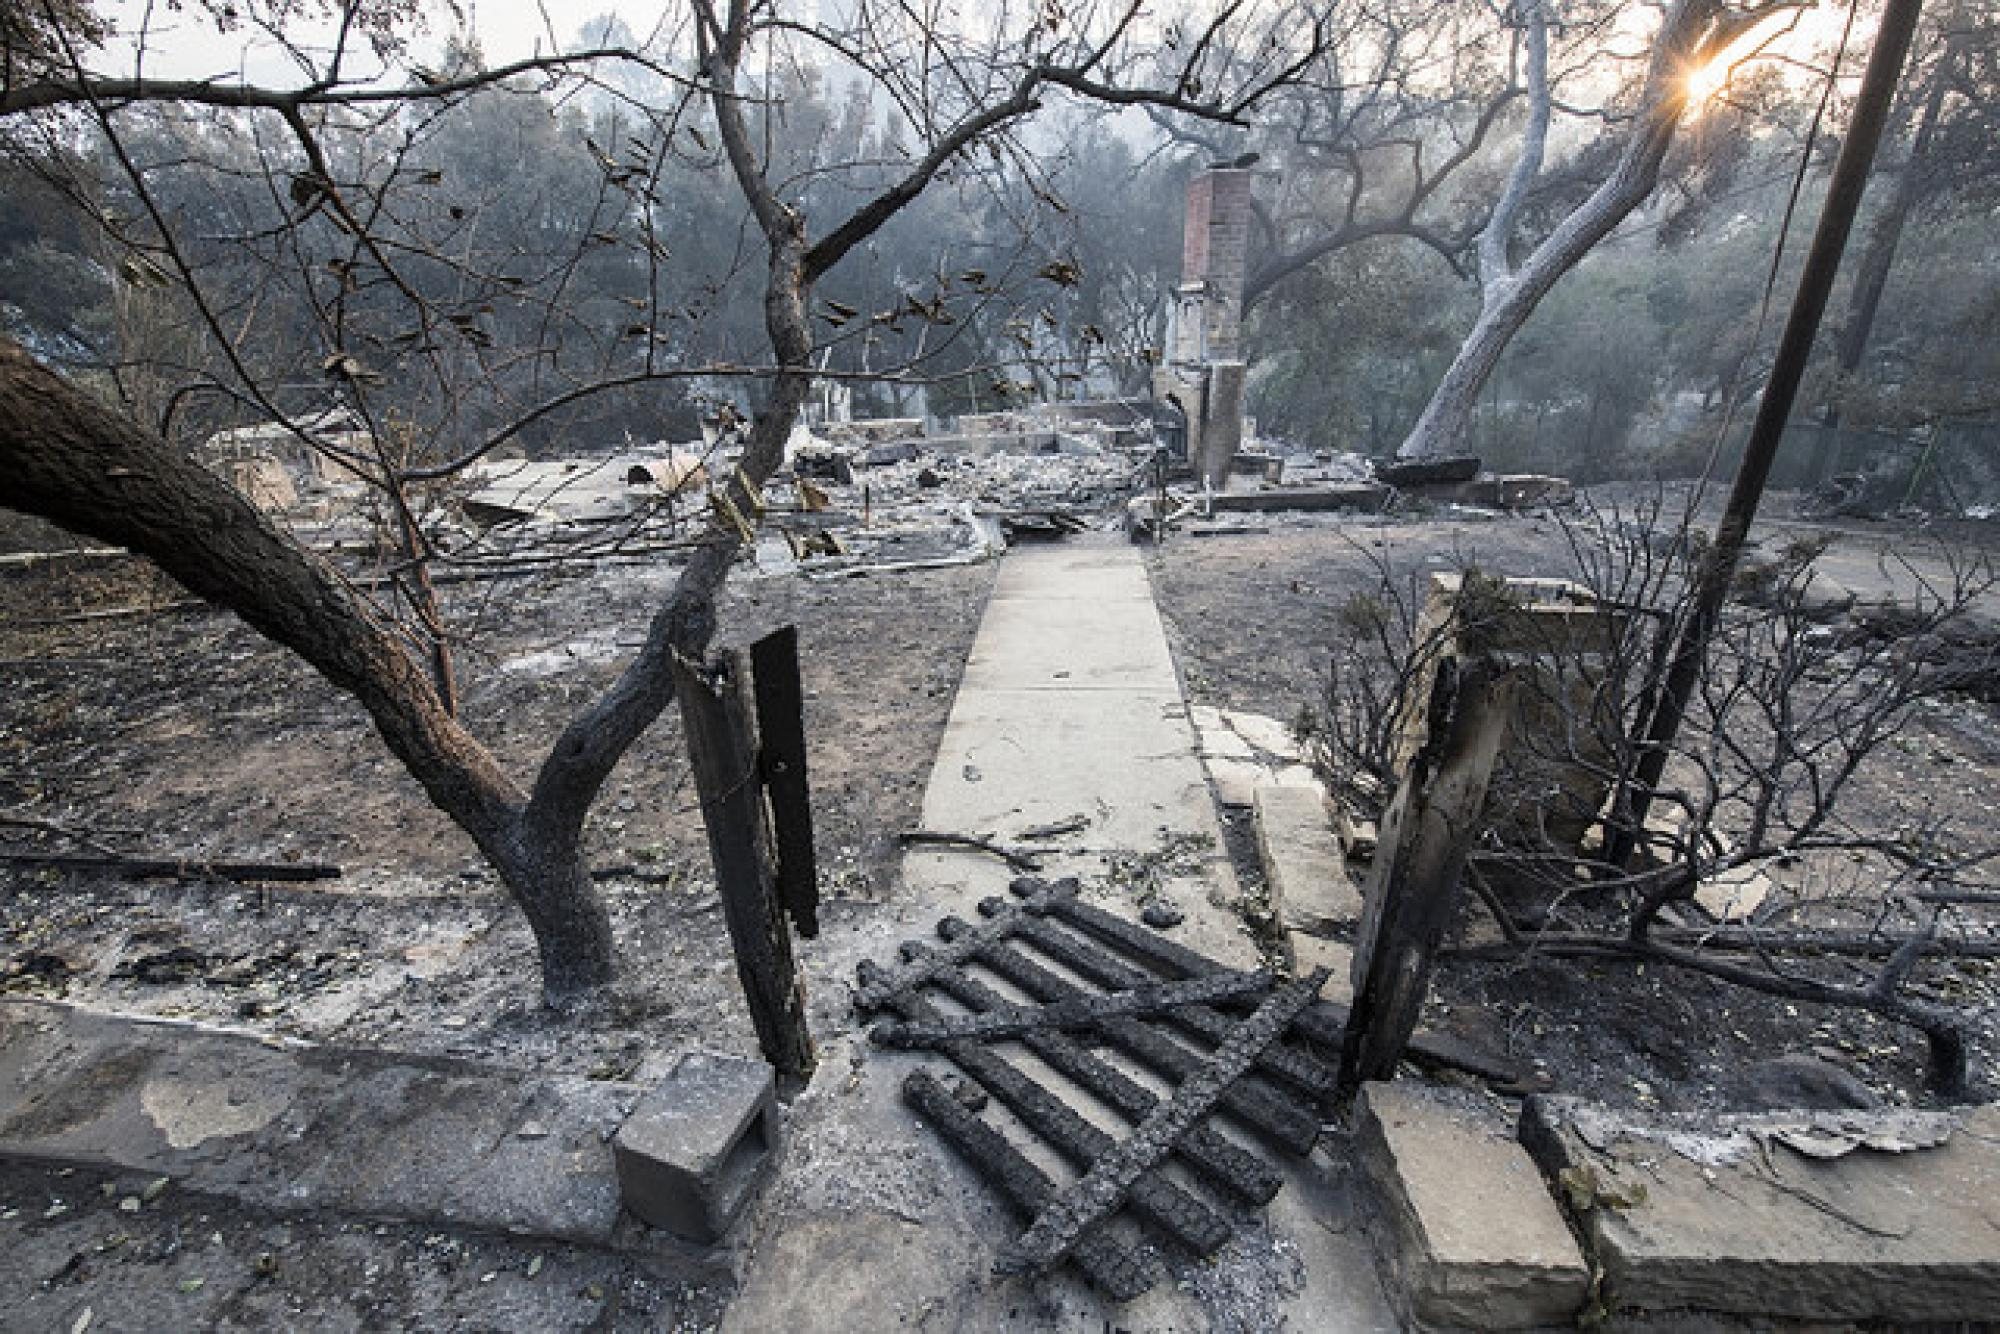 Thousands of homes and buildings were destroyed in the Thomas Fire, which is estimated to have a total cost of more than $180 billion.